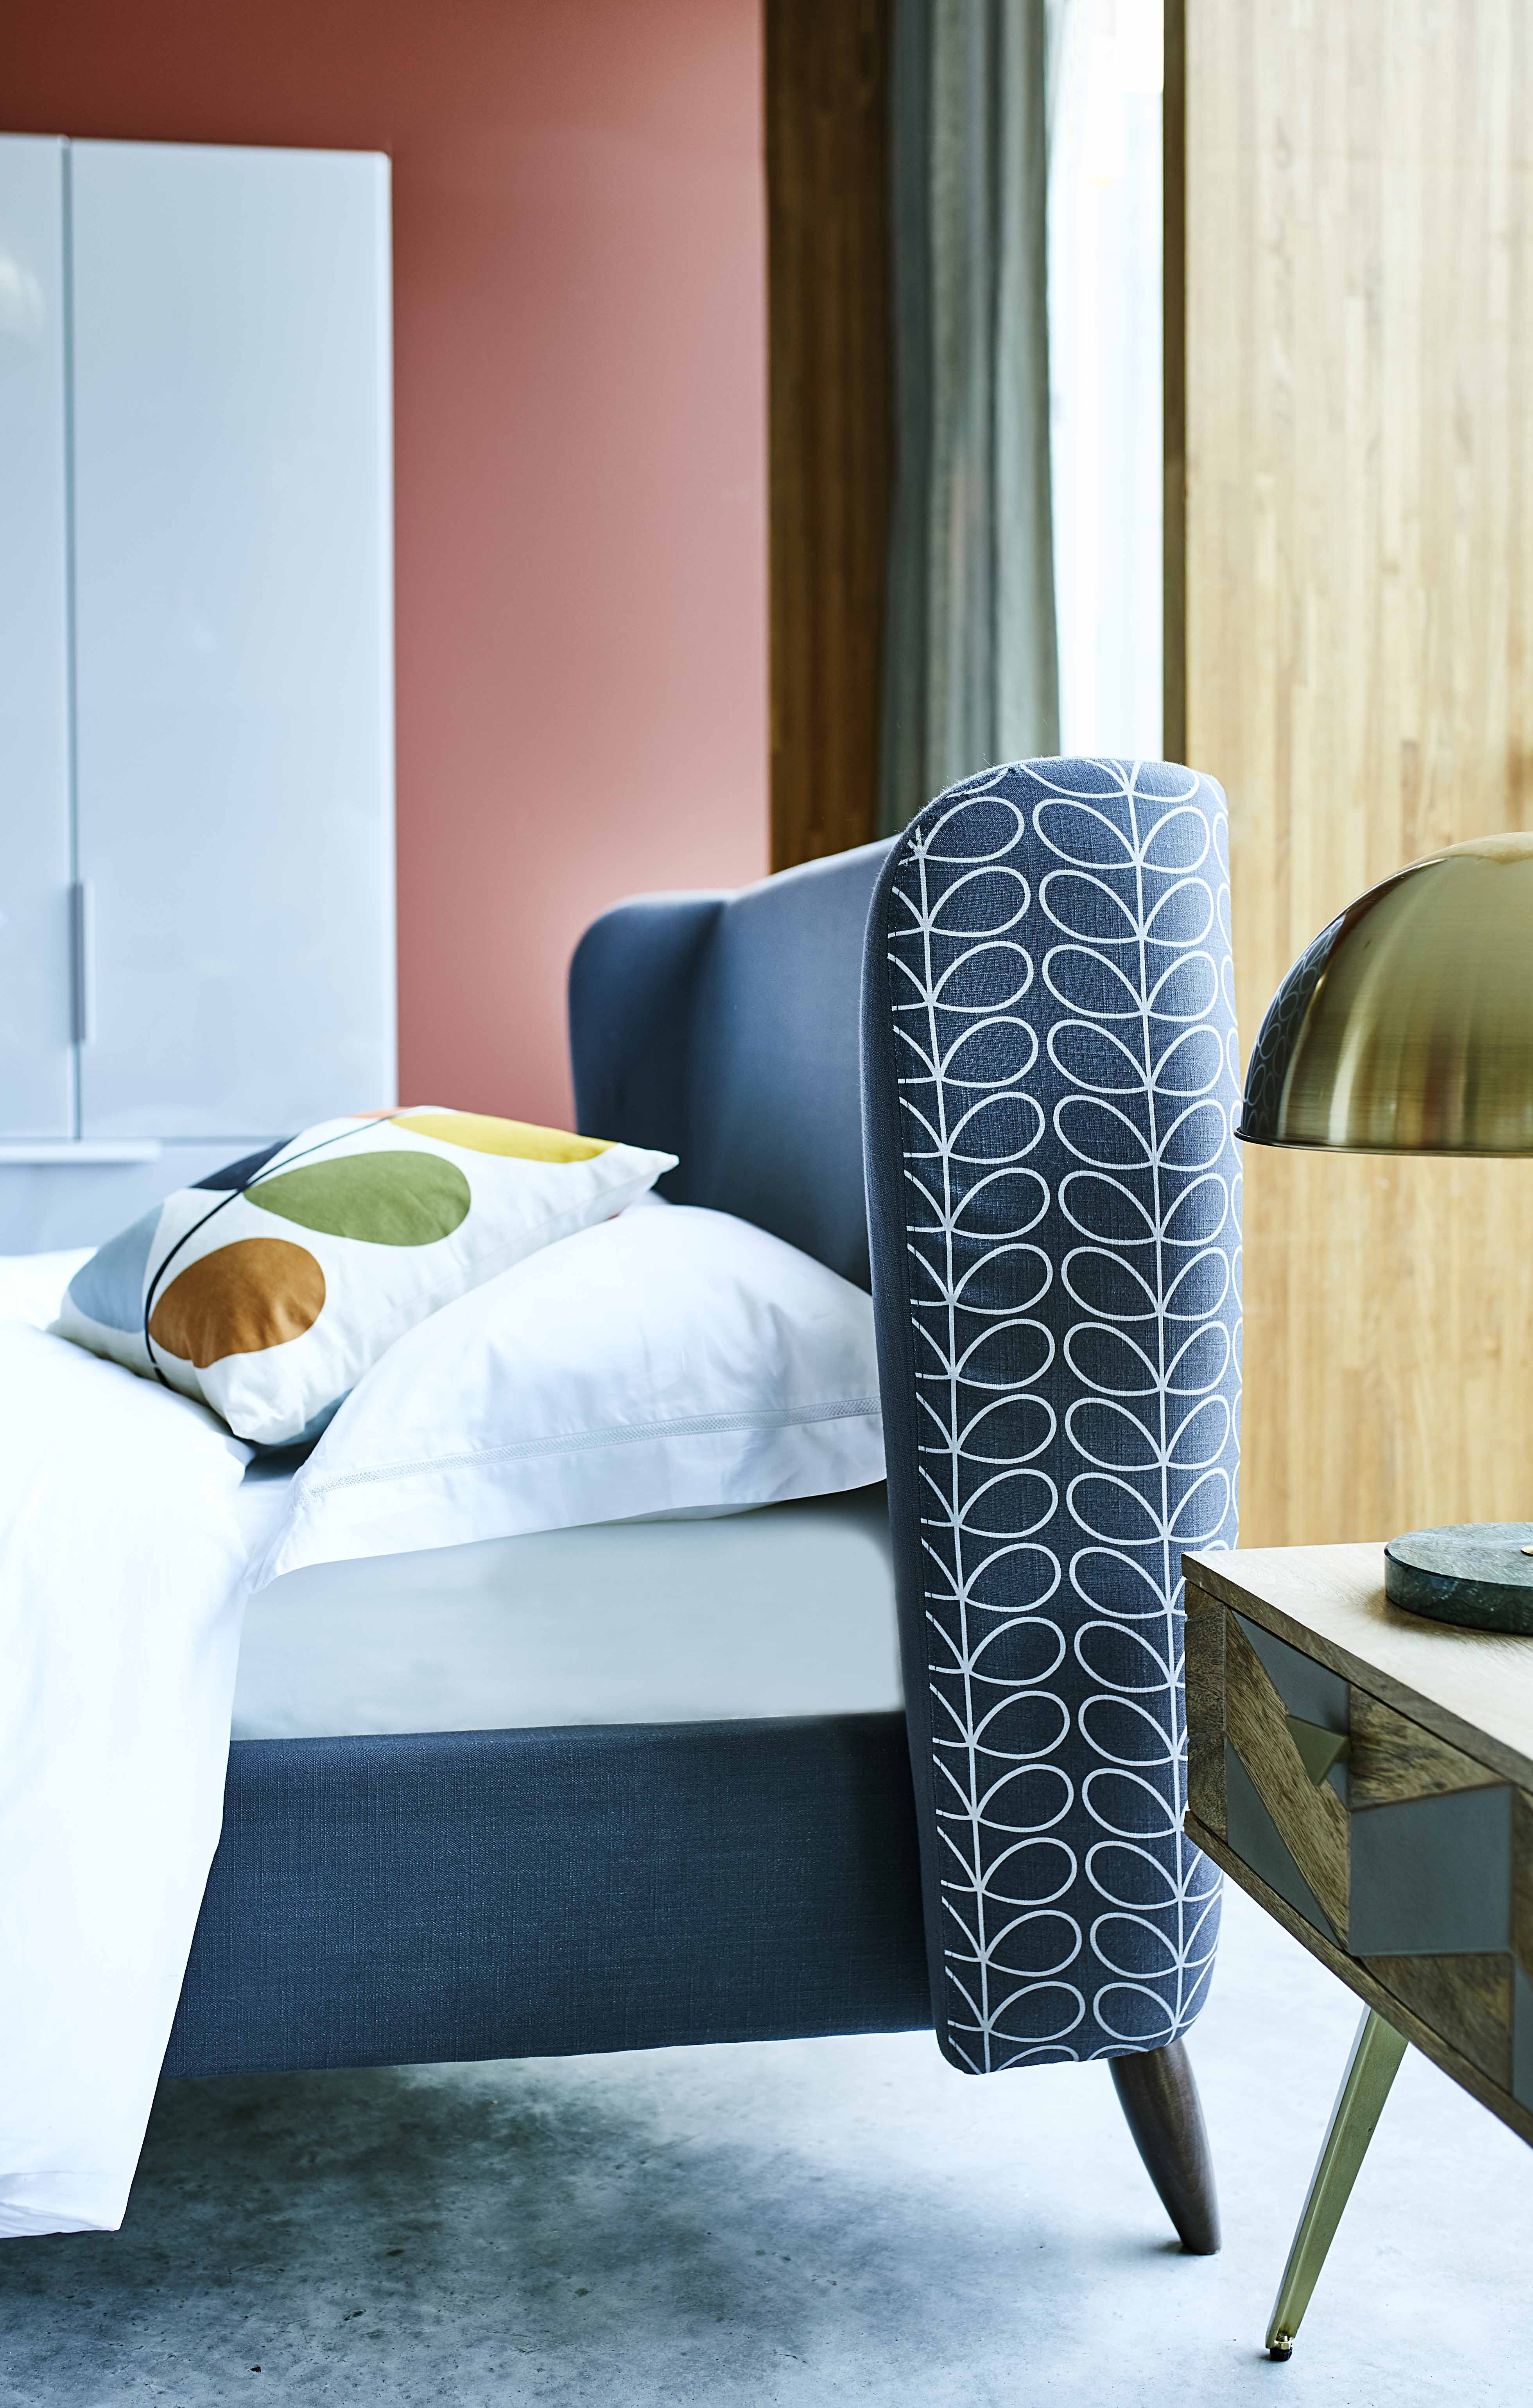 Orla Kiely Bedding John Lewis Orla Kiely Launches Furniture Collection With Barker And Stonehouse